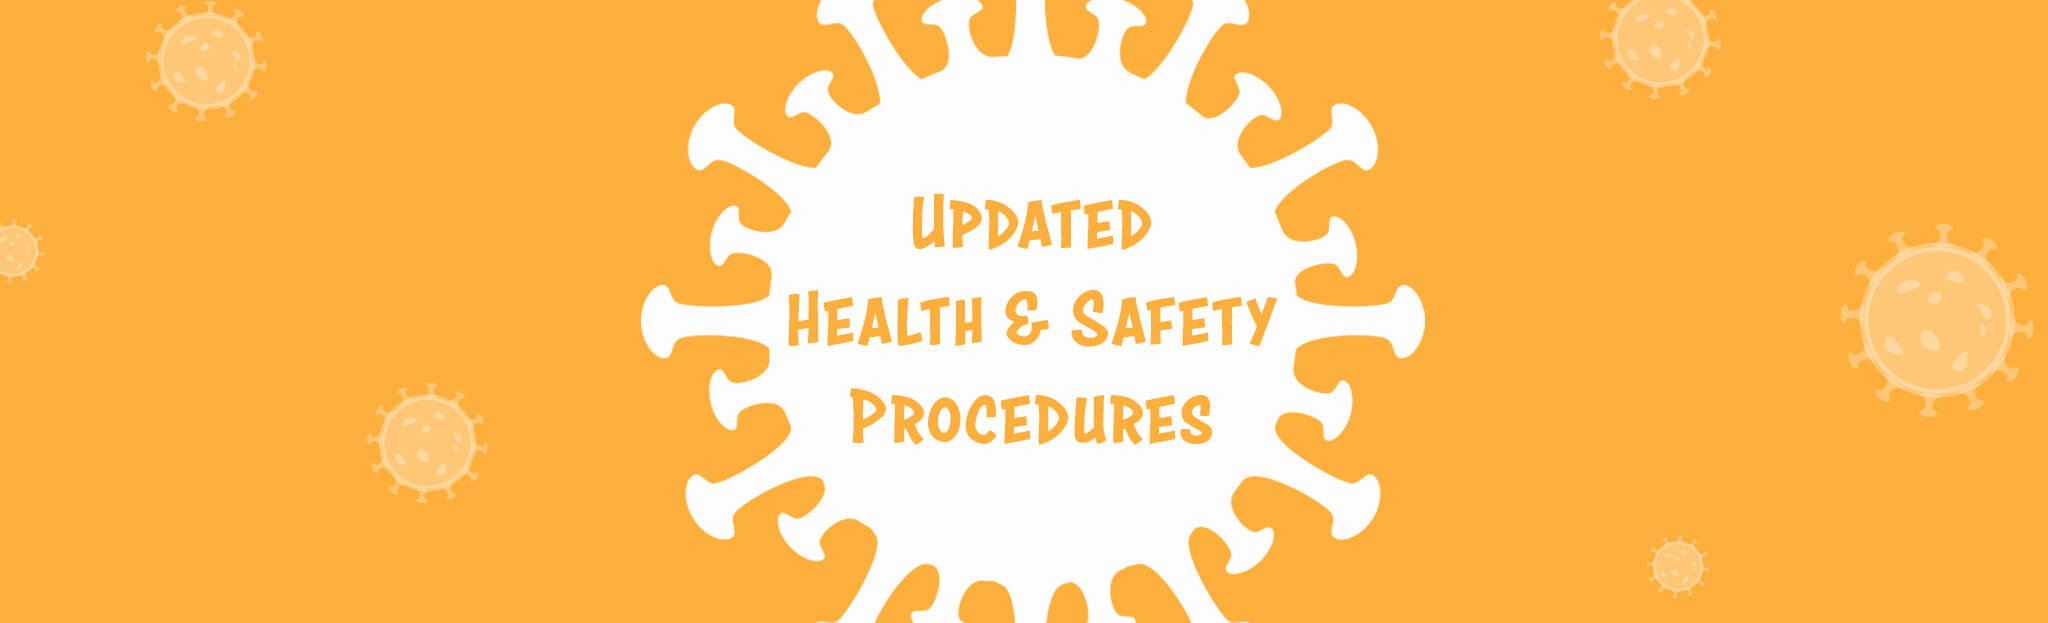 COVID-19: Updated Health & Safety Procedures